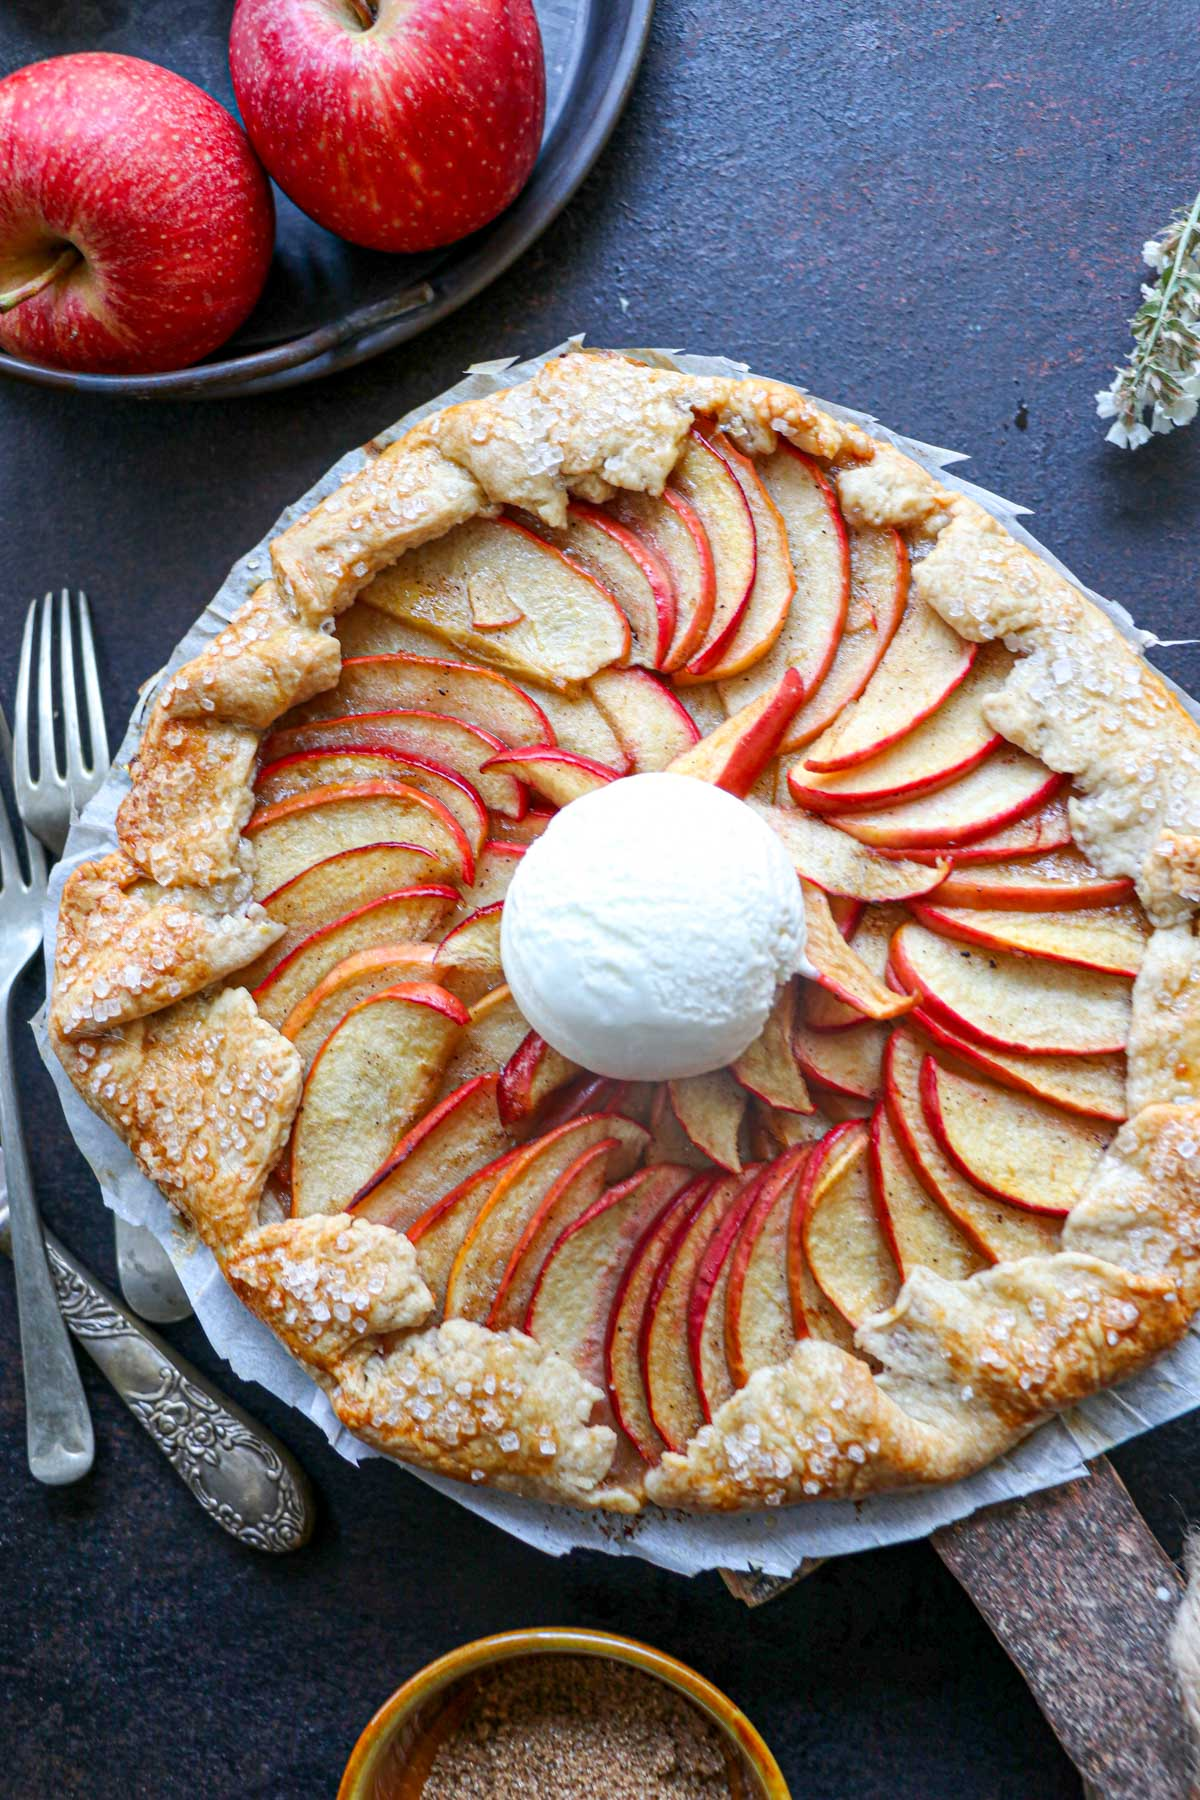 apple galette with a black background and ice cream on top with whole red apples also on the table